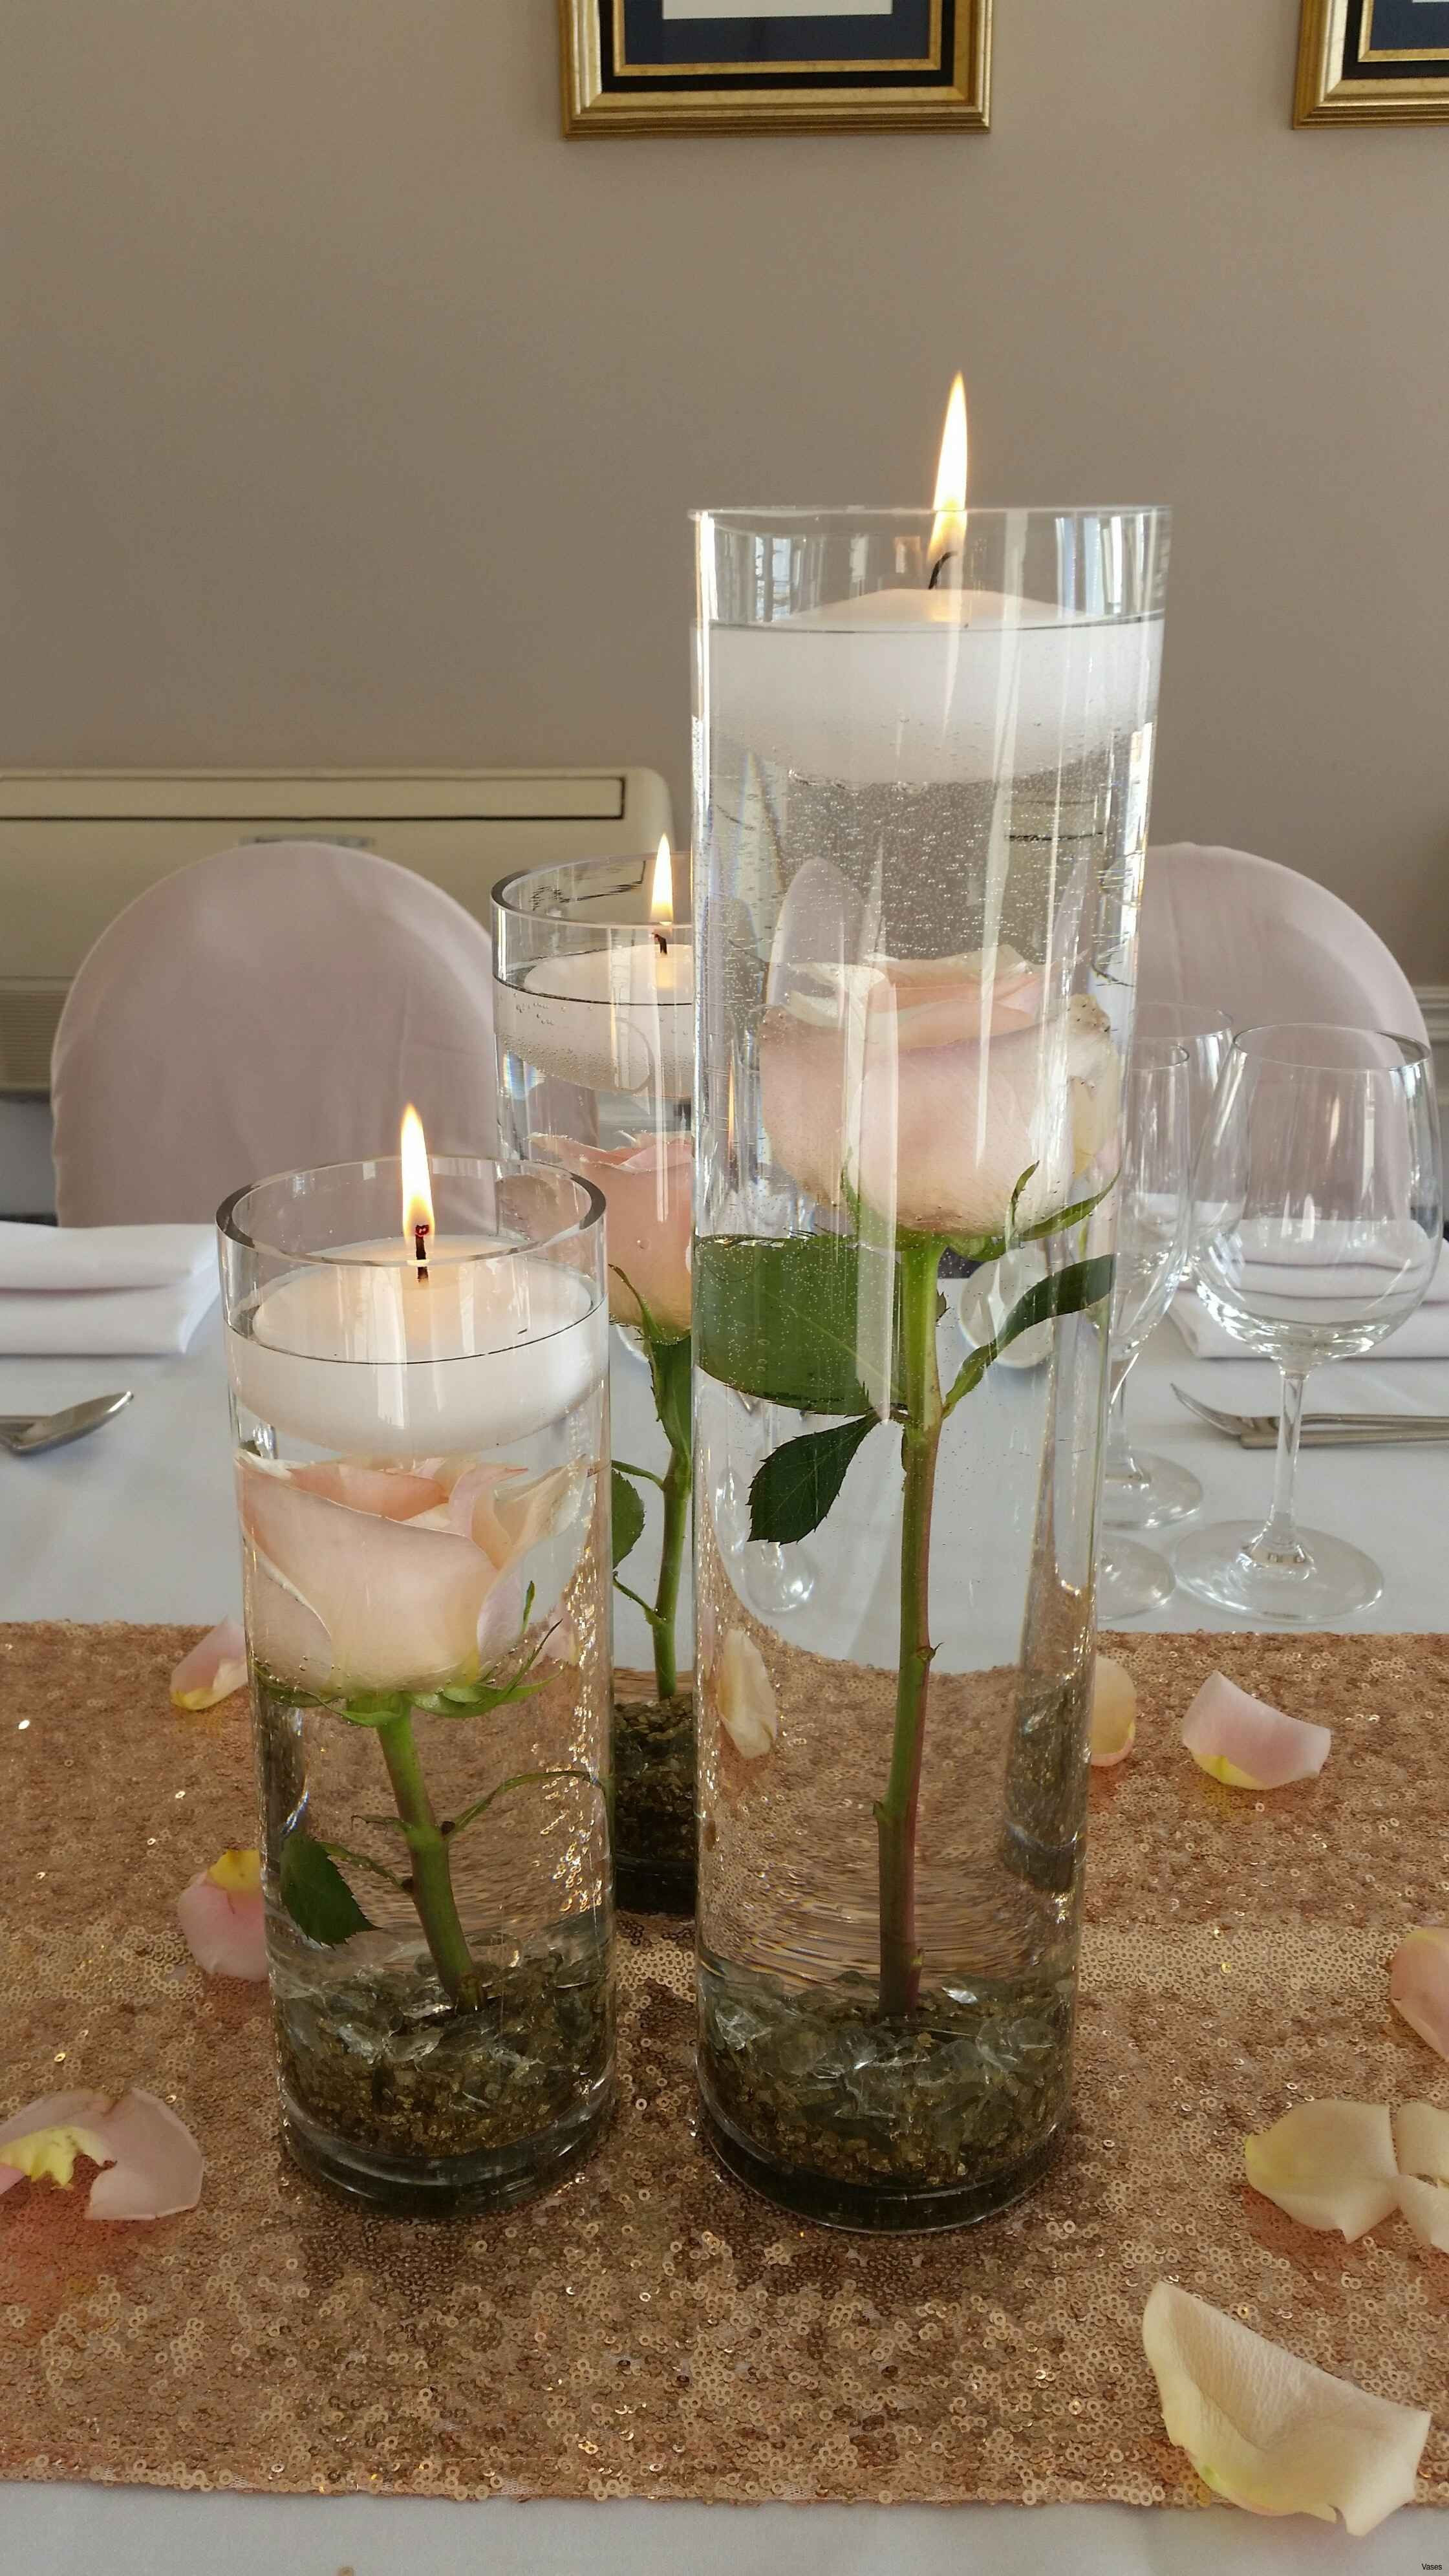 Set Of 3 Cylinder Glass Vases Of 23 Tall Cylinder Vases the Weekly World Inside Tall Vase Centerpiece Ideas Vases Floating Flowers In Centerpieces